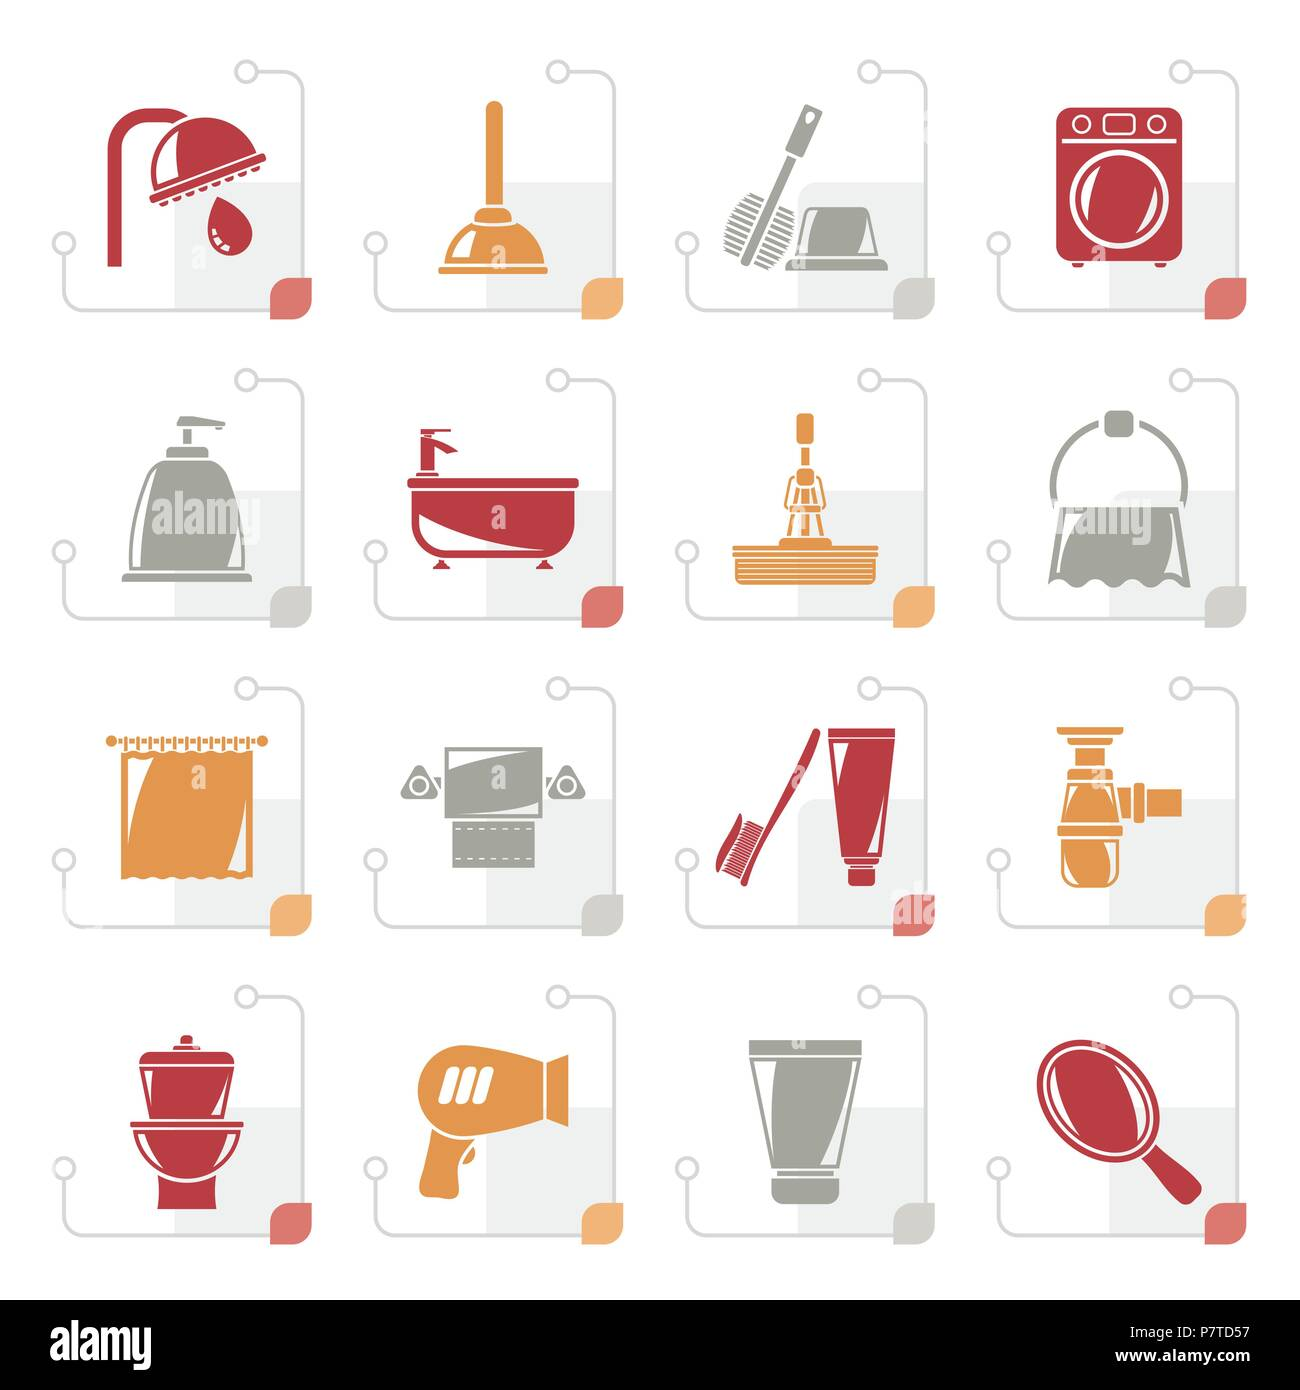 Stylized Bathroom and hygiene objects icons -vector icon set - Stock Image